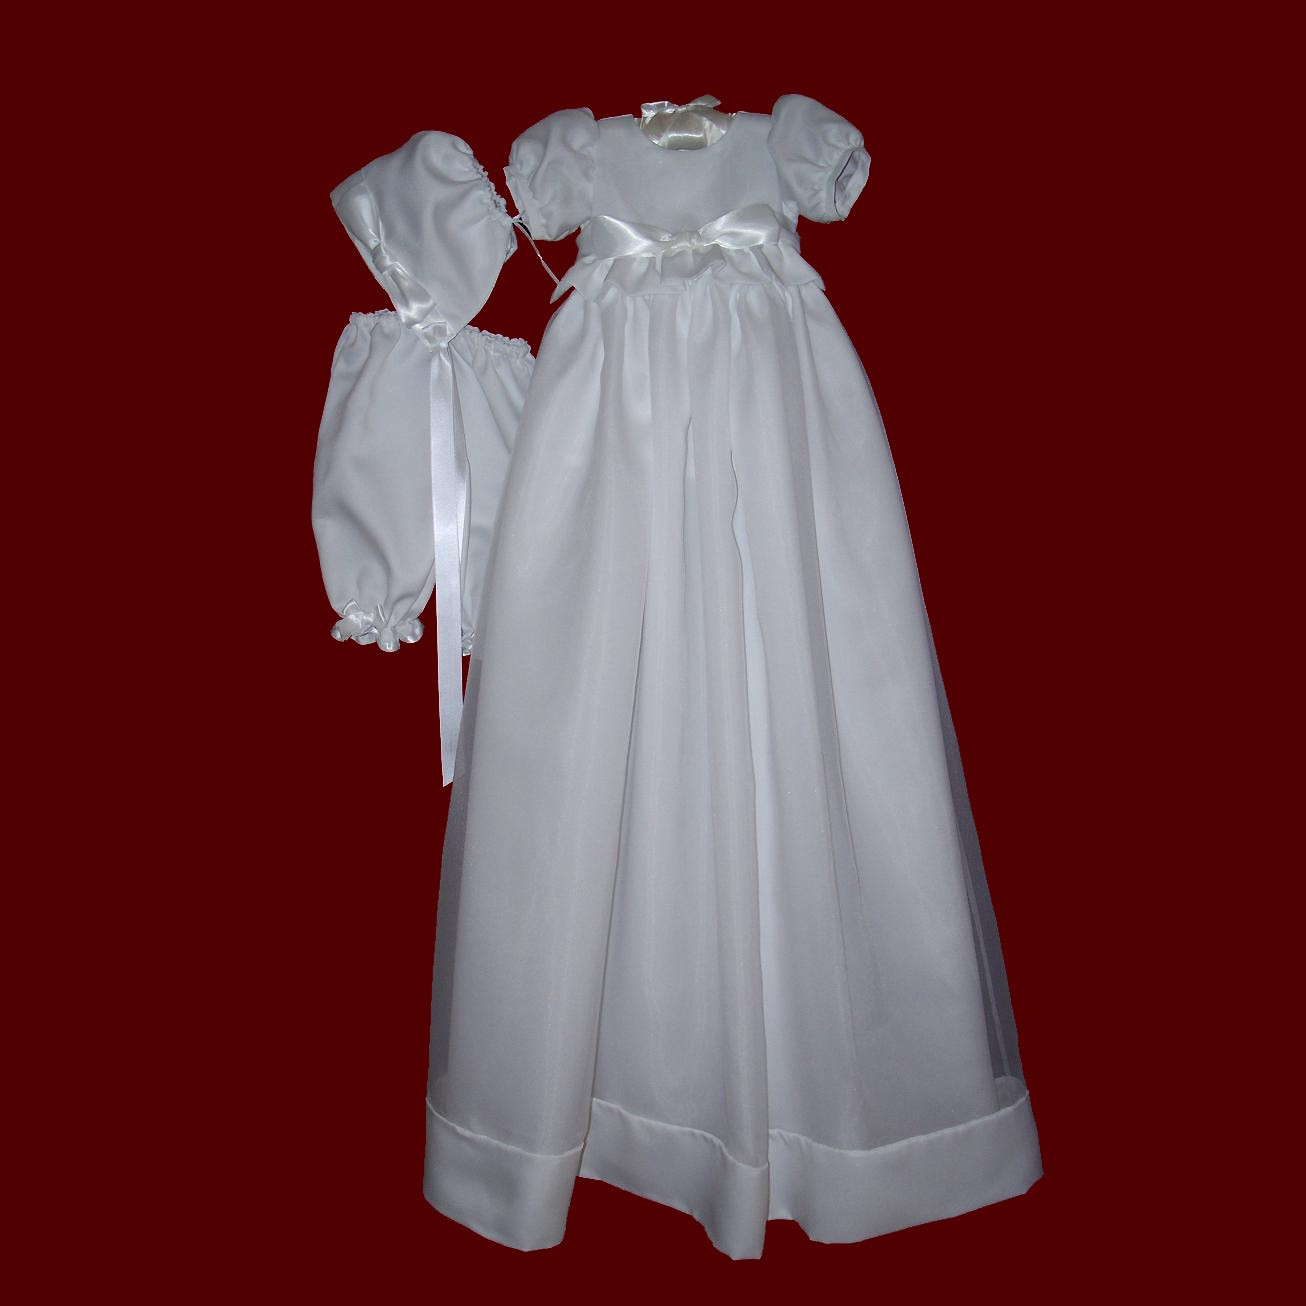 Satin Bow With Detachable Organza Christening Gown, Short dress & Bonnet